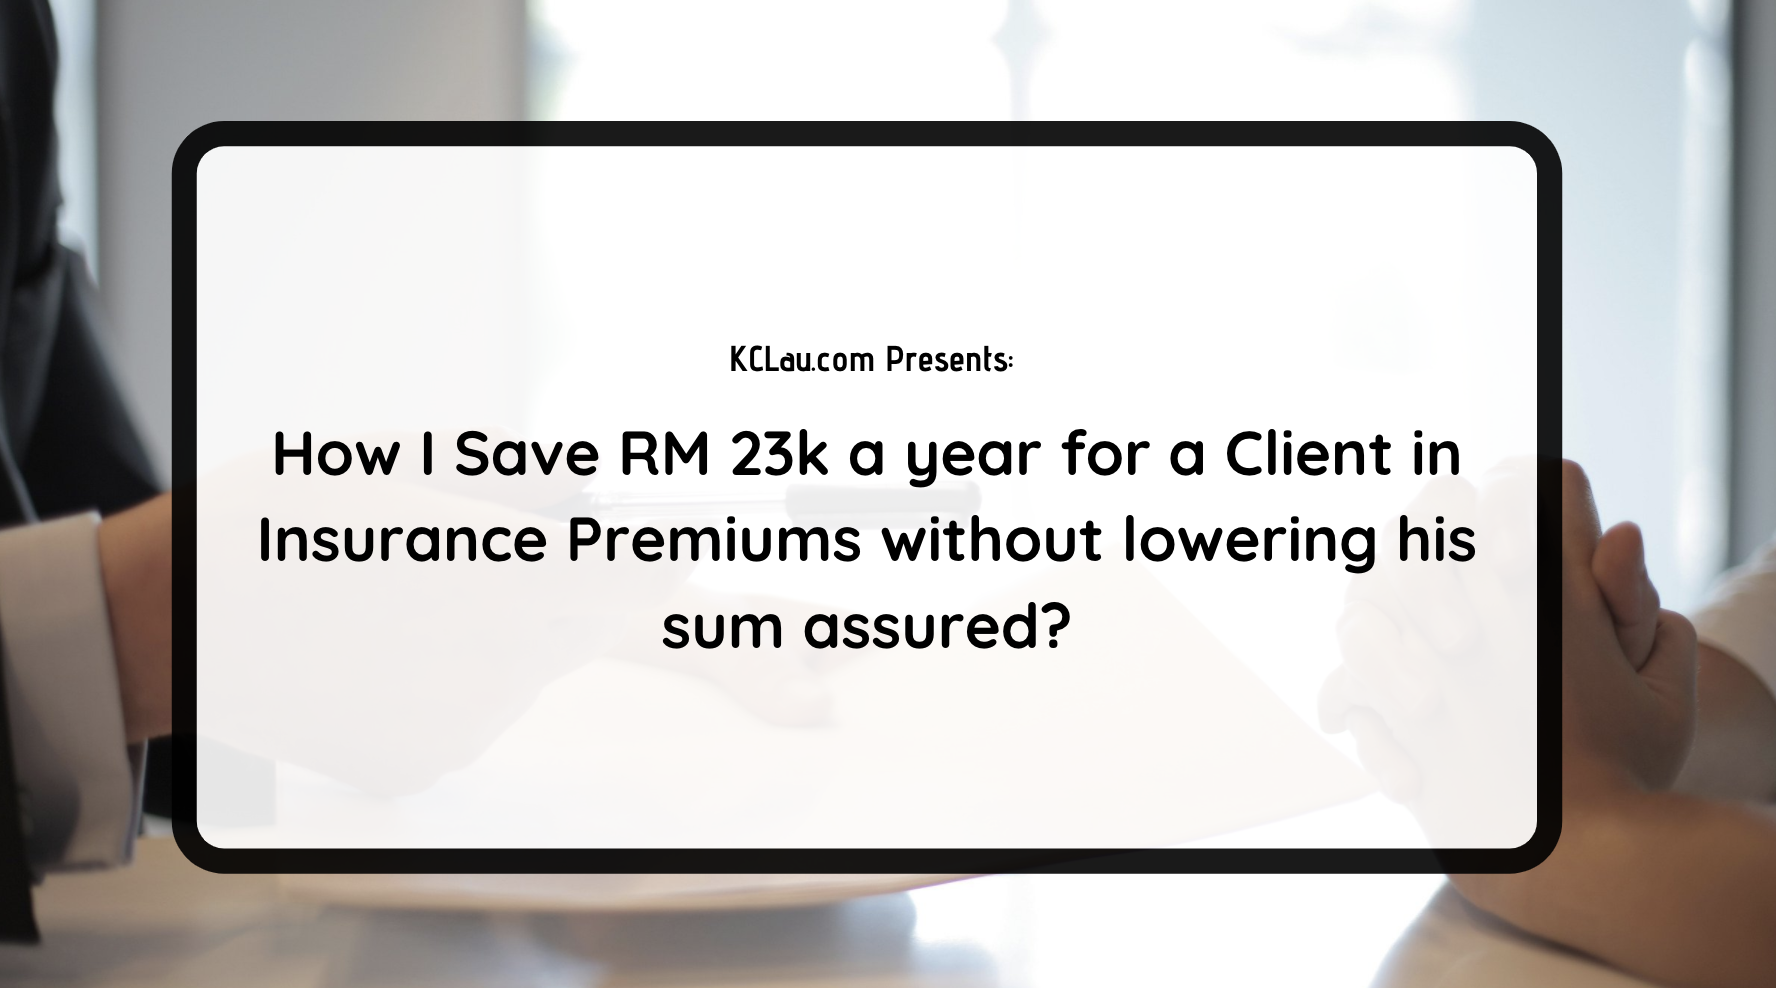 How I Save RM 23k a year for a Client in Insurance Premiums without lowering his sum assured?